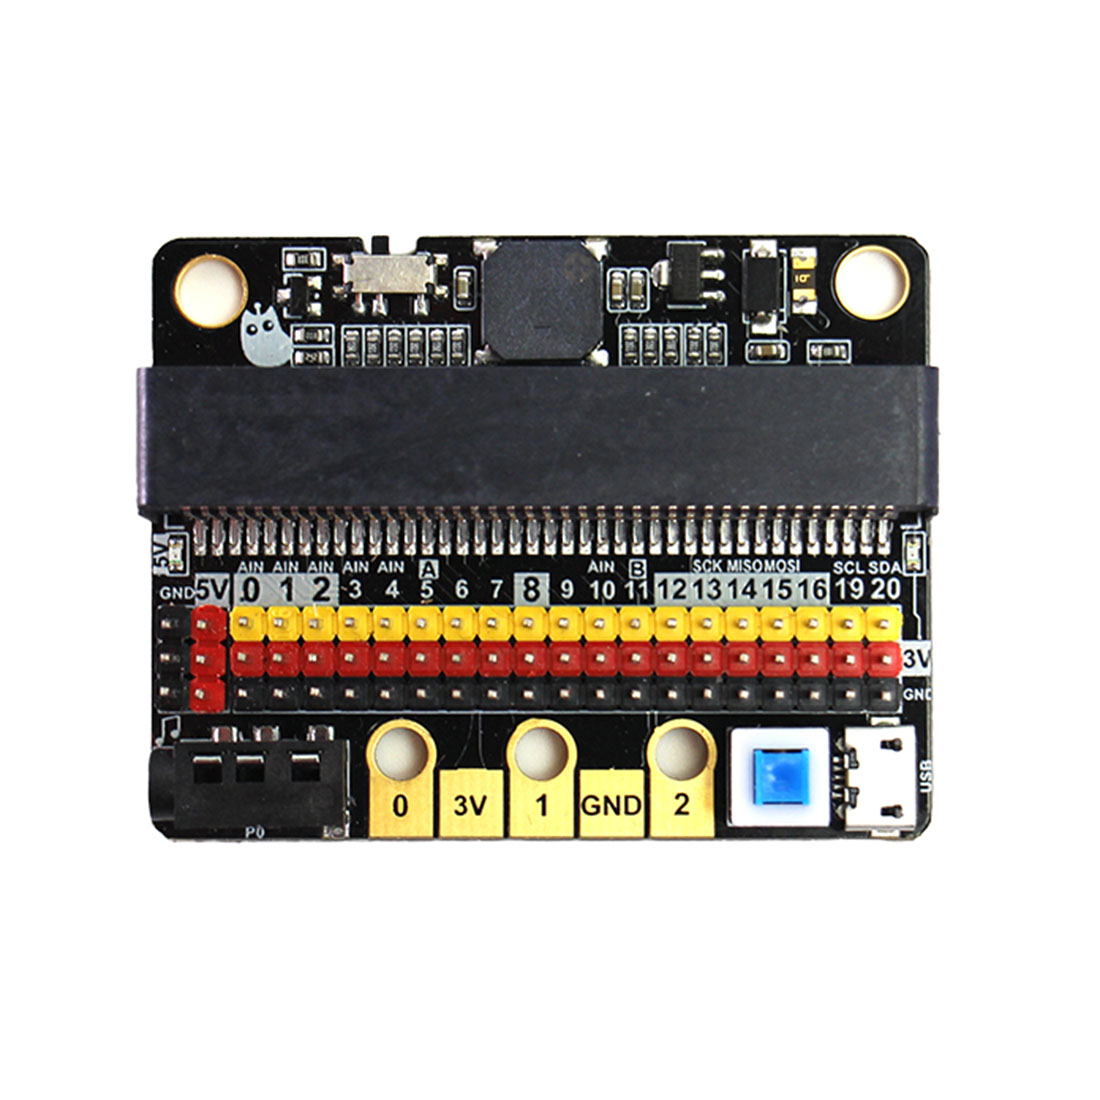 1pcs Microbit IOBIT V1.0 V2.0 Development Board Expansion Board STEM Educational Toy Accessories Drop Shipping